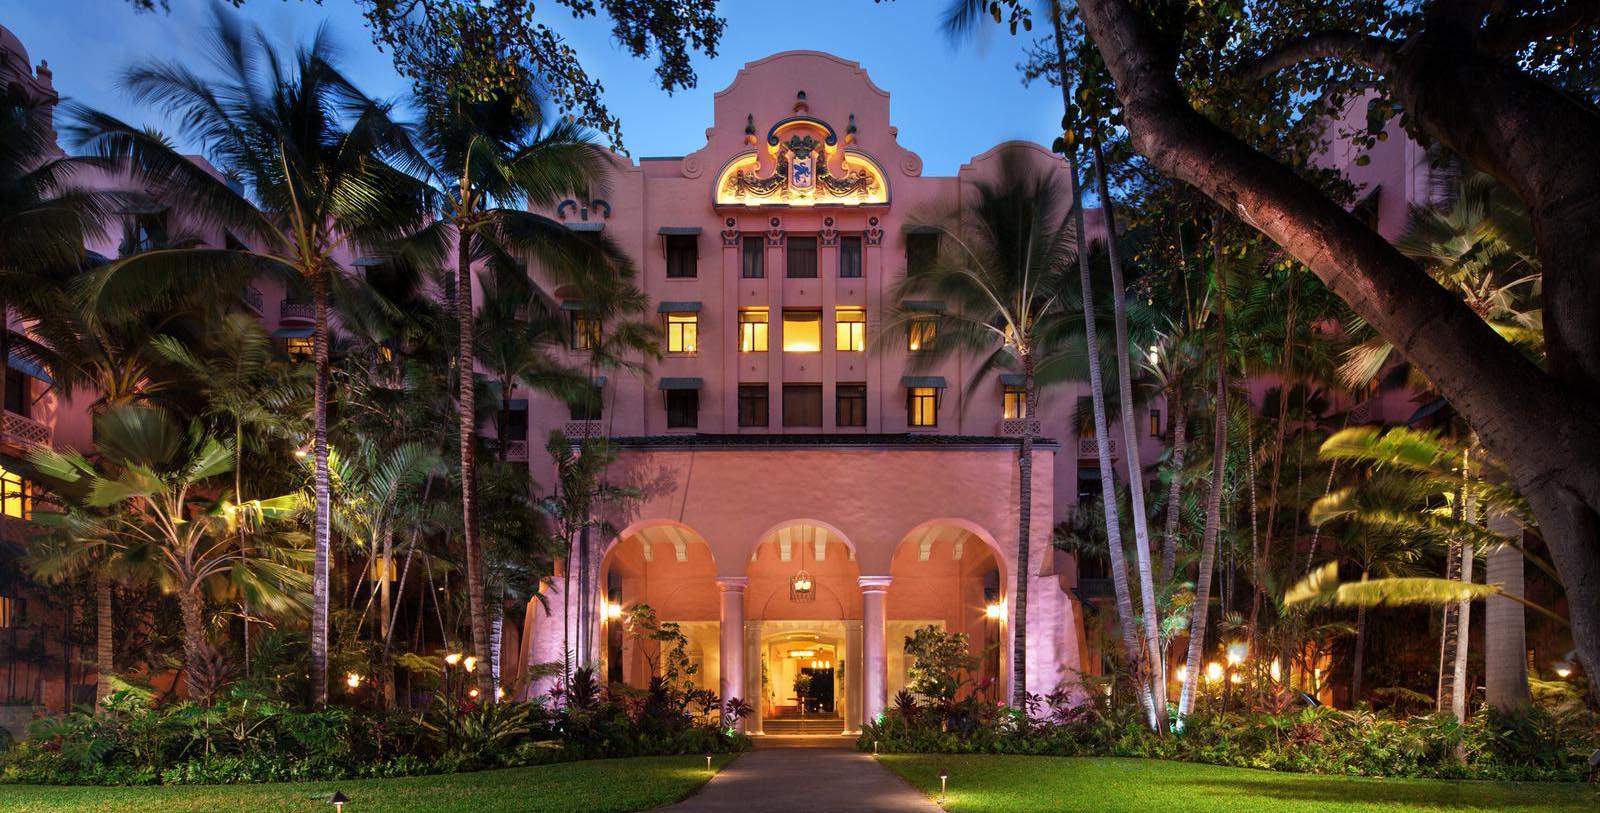 Image of Hotel Exterior The Royal Hawaiian, A Luxury Collection Resort, 1927, Member of Historic Hotels of America, in Honolulu, Hawaii, Special Offers, Discounted Rates, Families, Romantic Escape, Honeymoons, Anniversaries, Reunions